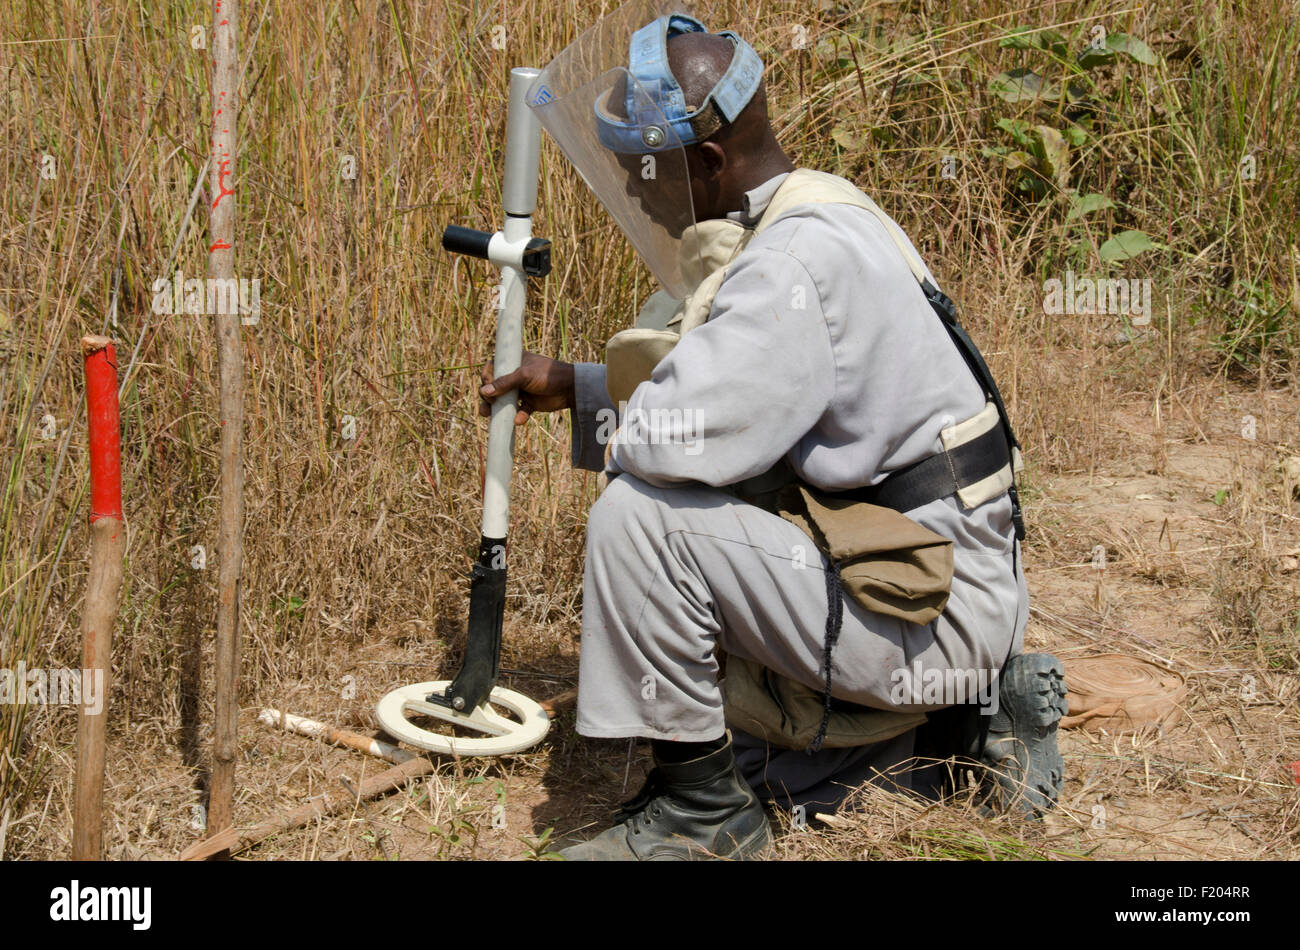 Angola, Mine clearence specialist preparing equipment used to look for unexploded ordenance. - Stock Image